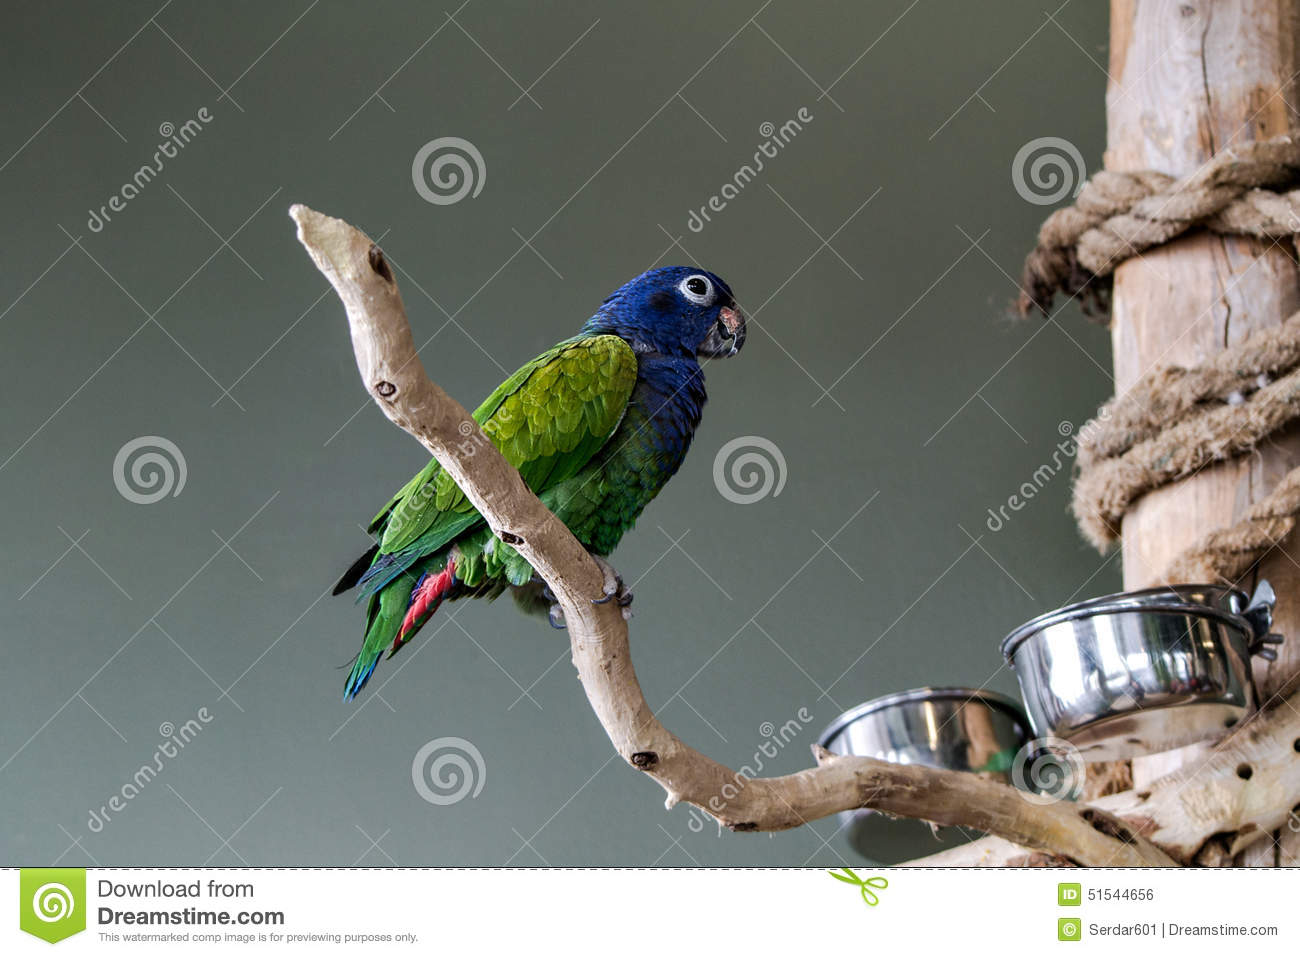 Blue-Crowned-Conure stock photo  Image of fowl, bird - 51544656